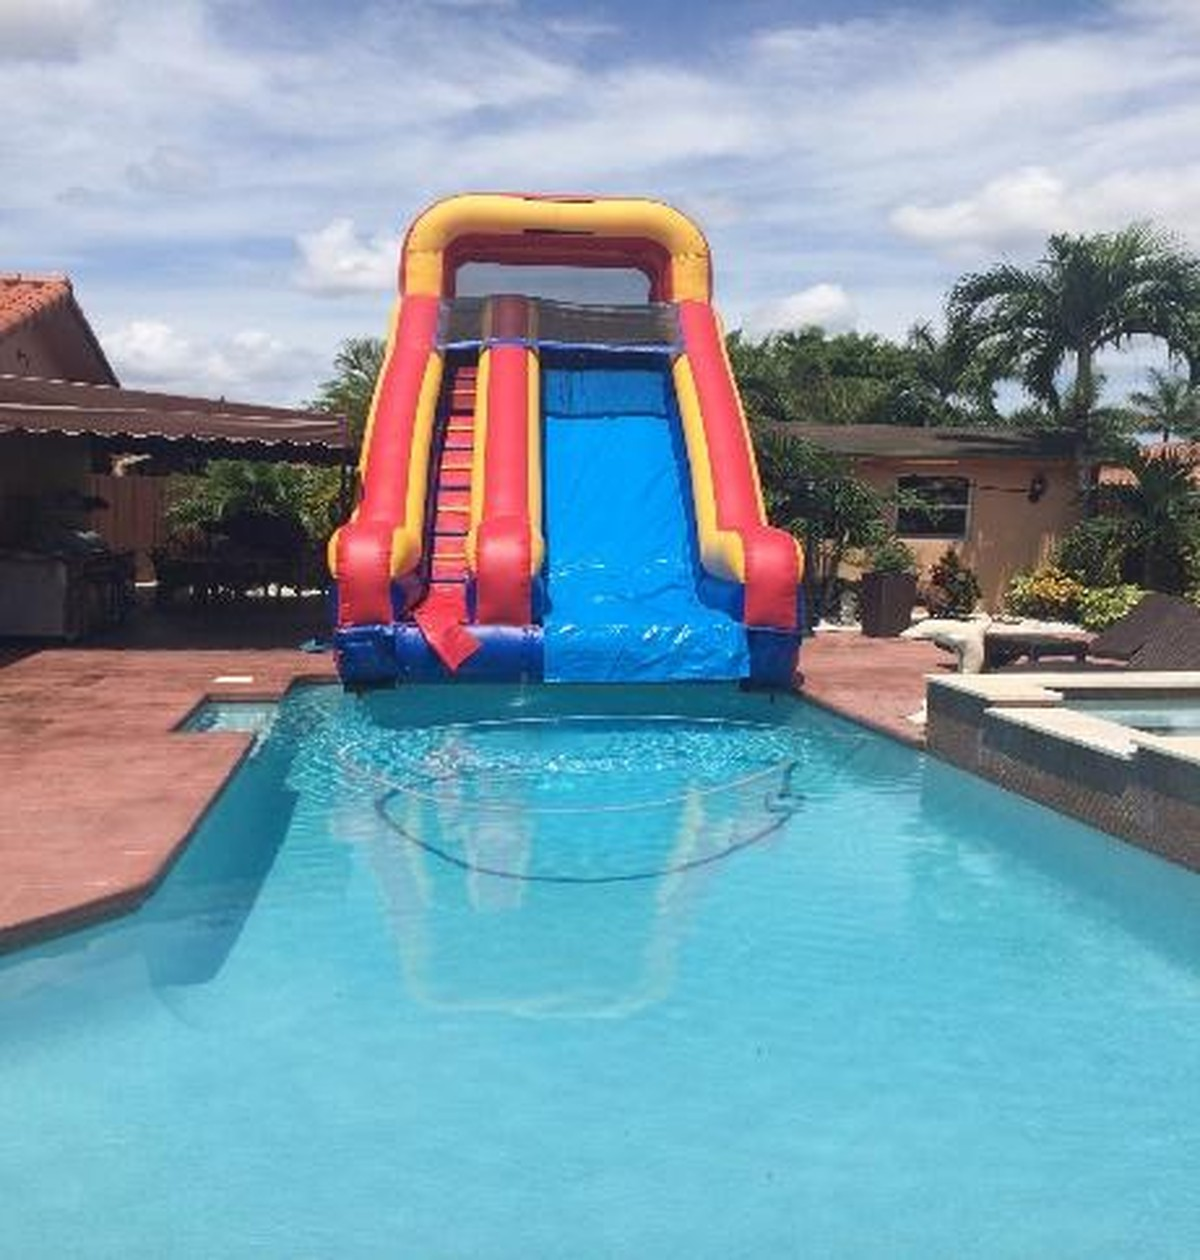 slide into a pool inflatables